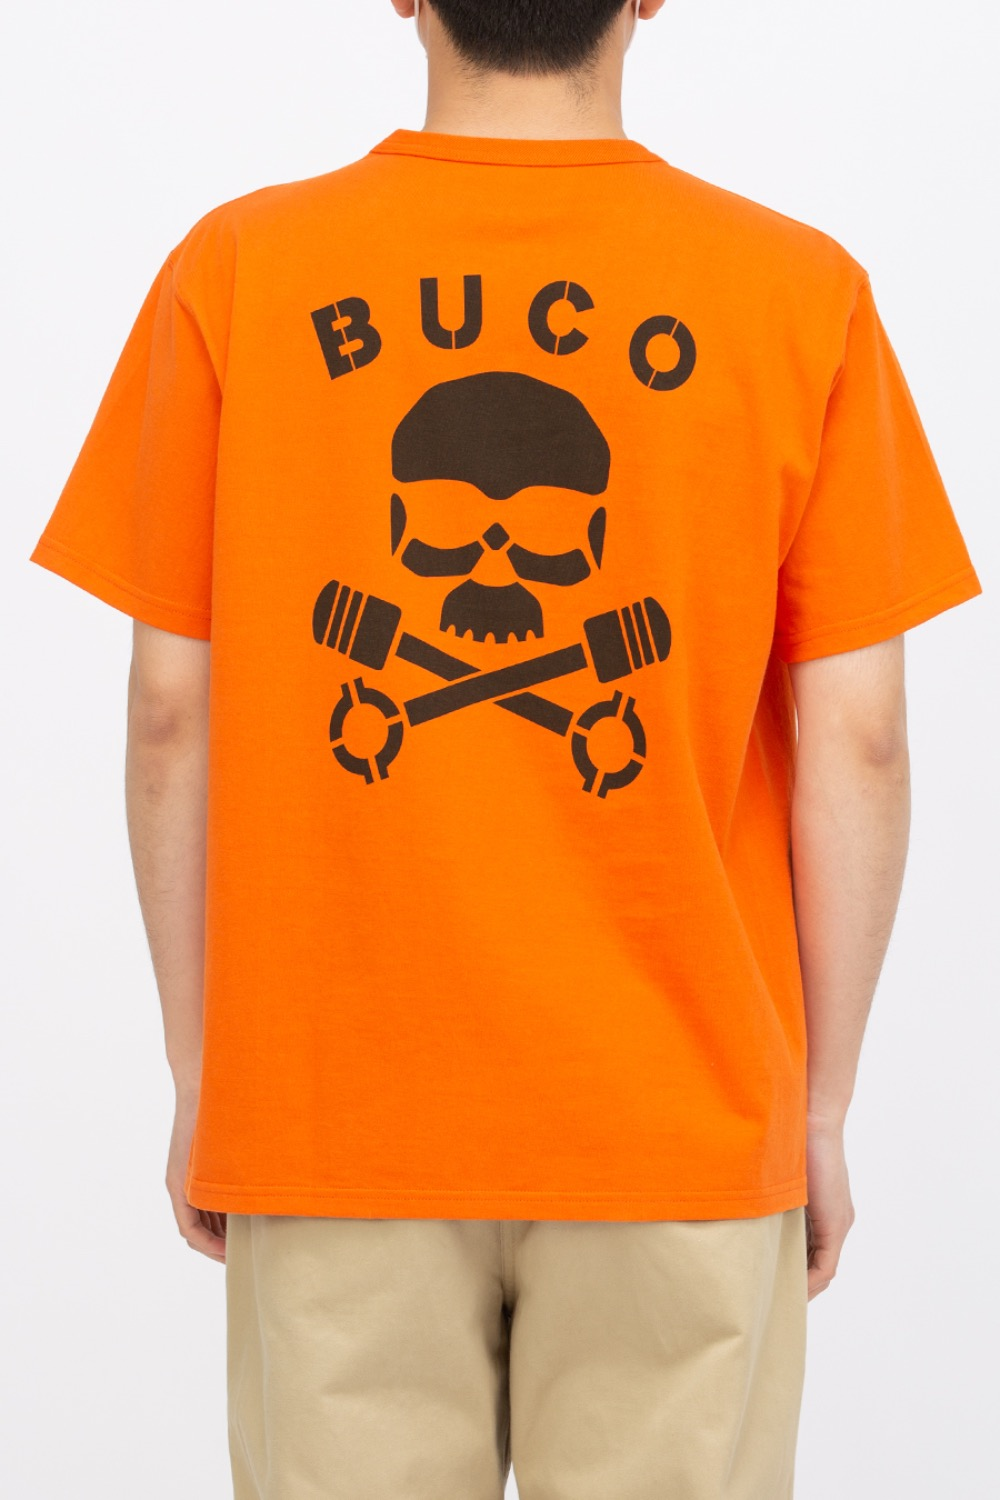 BUCO TEE / SKULL PISTON ORANGE